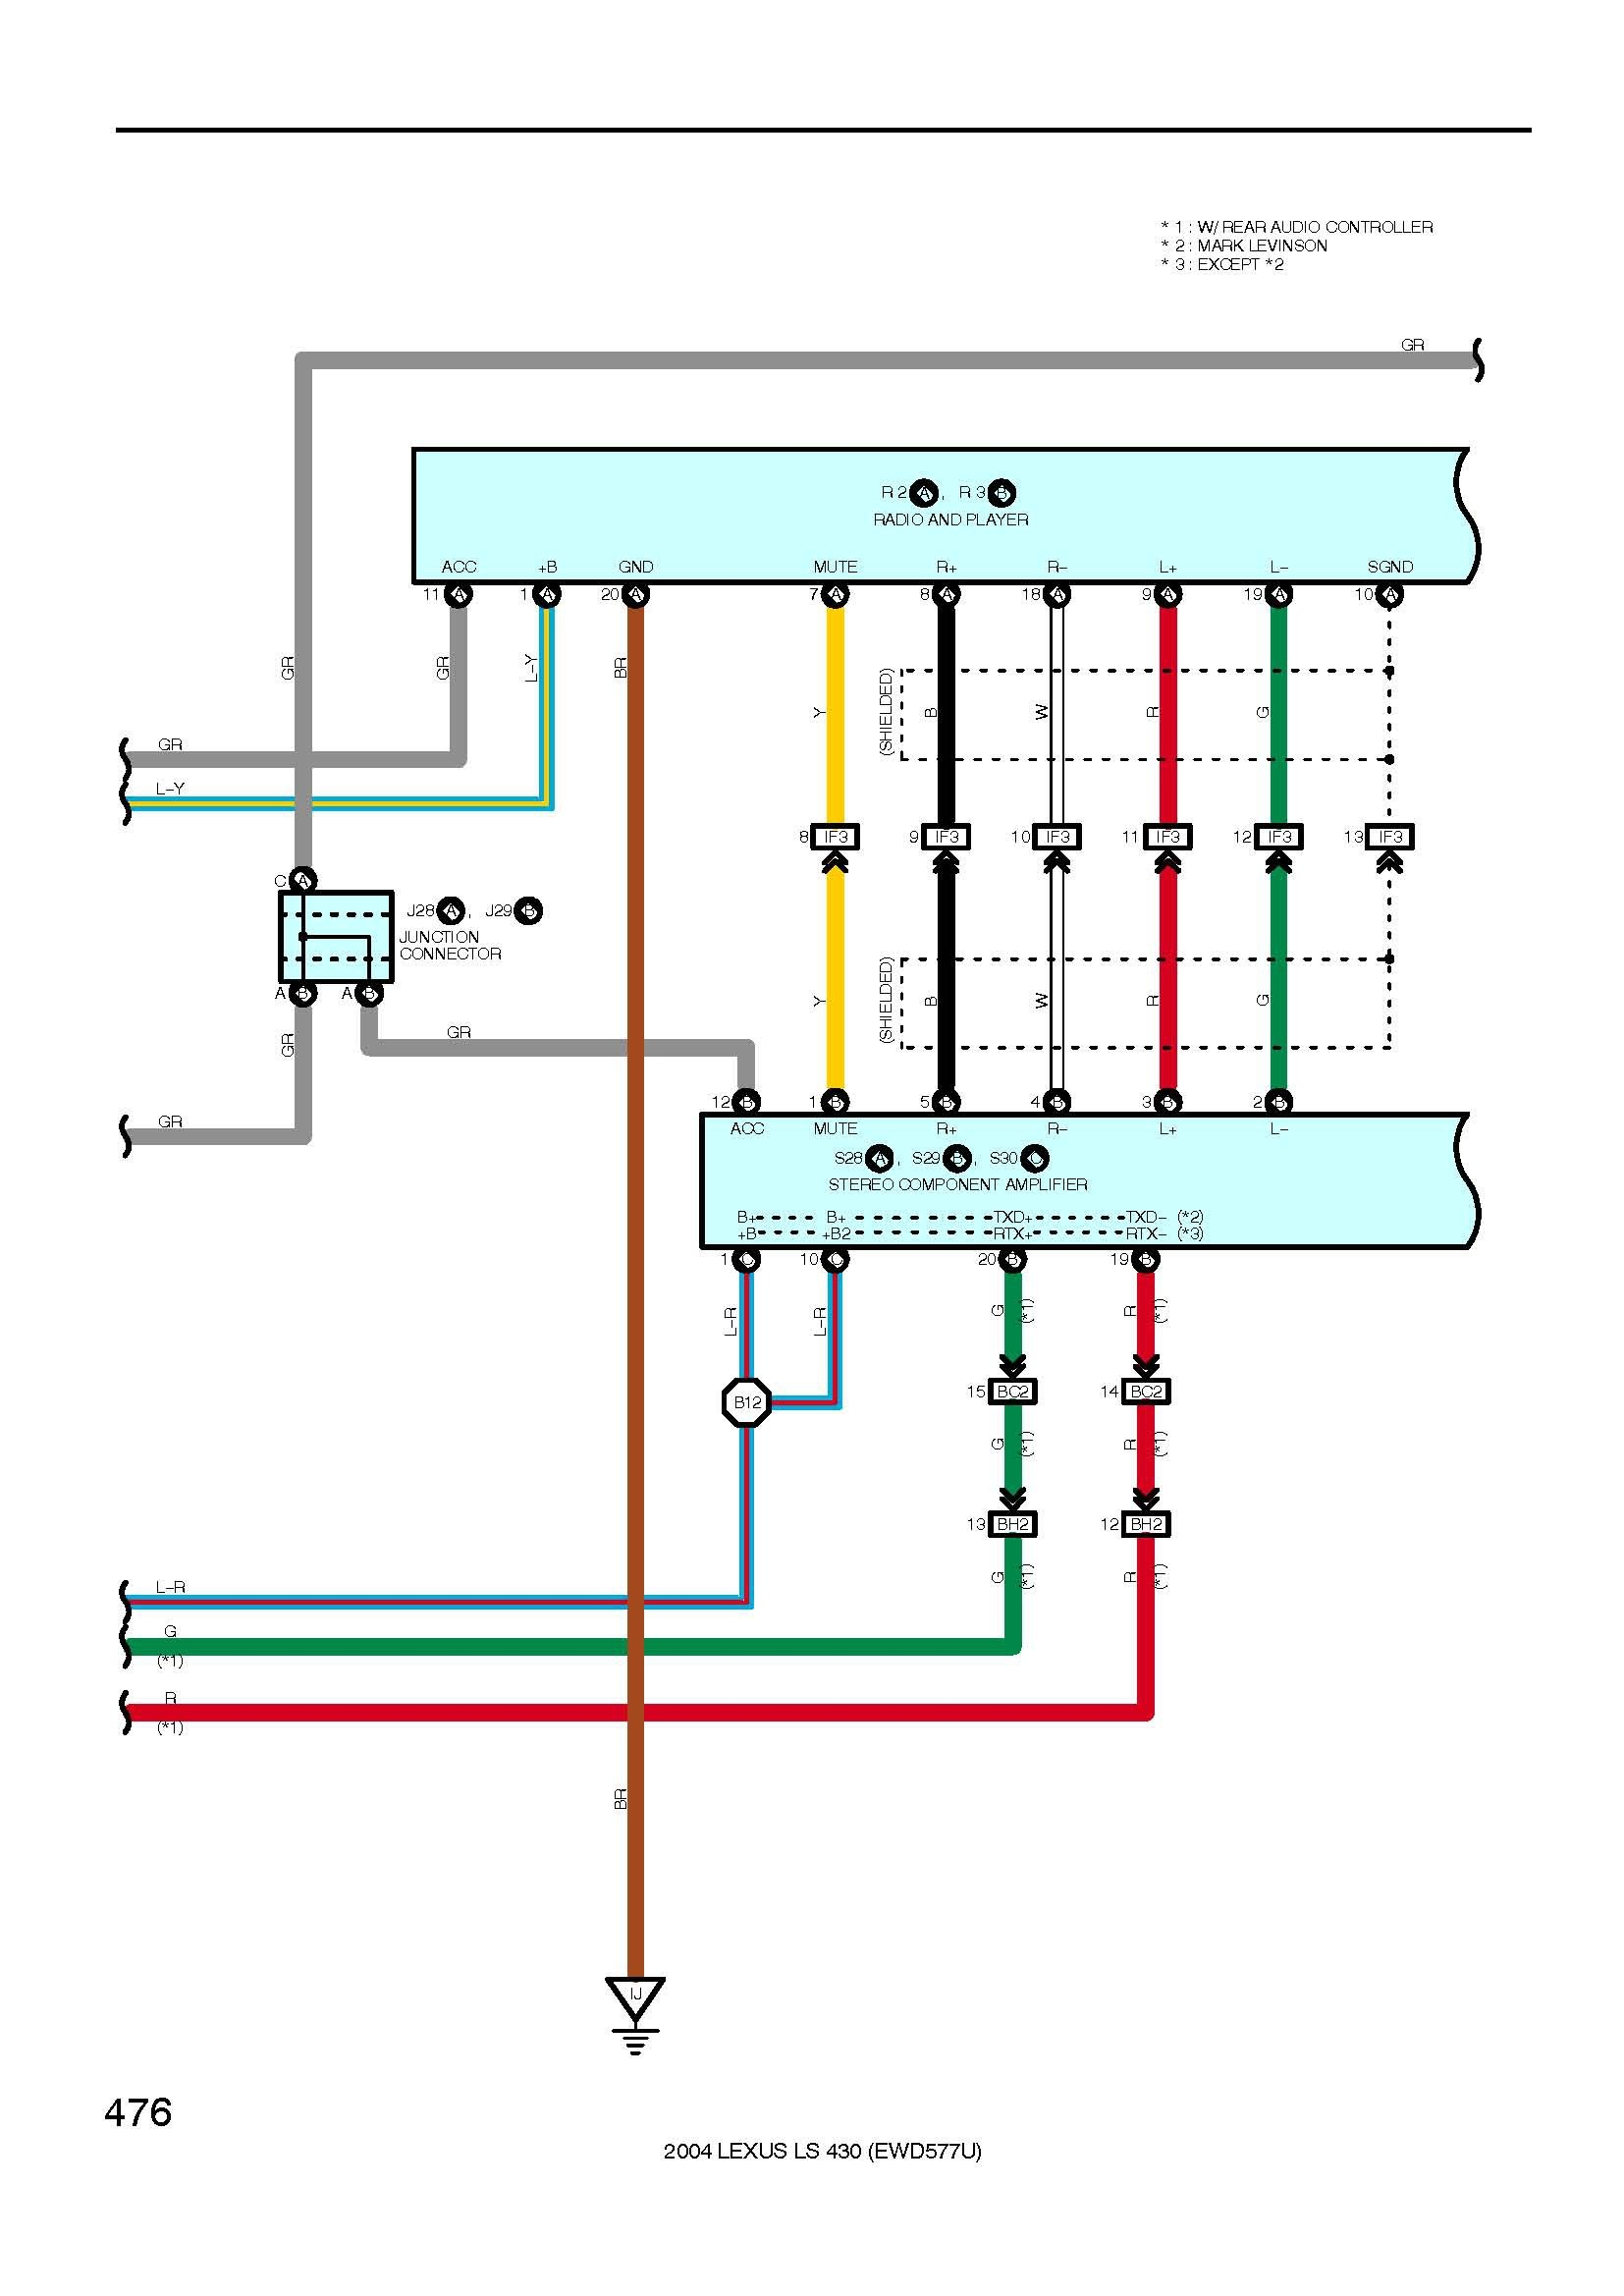 Diagram Of Car From Above Luxury Amp Wiring Diagram Diagram Of Diagram Of Car From Above